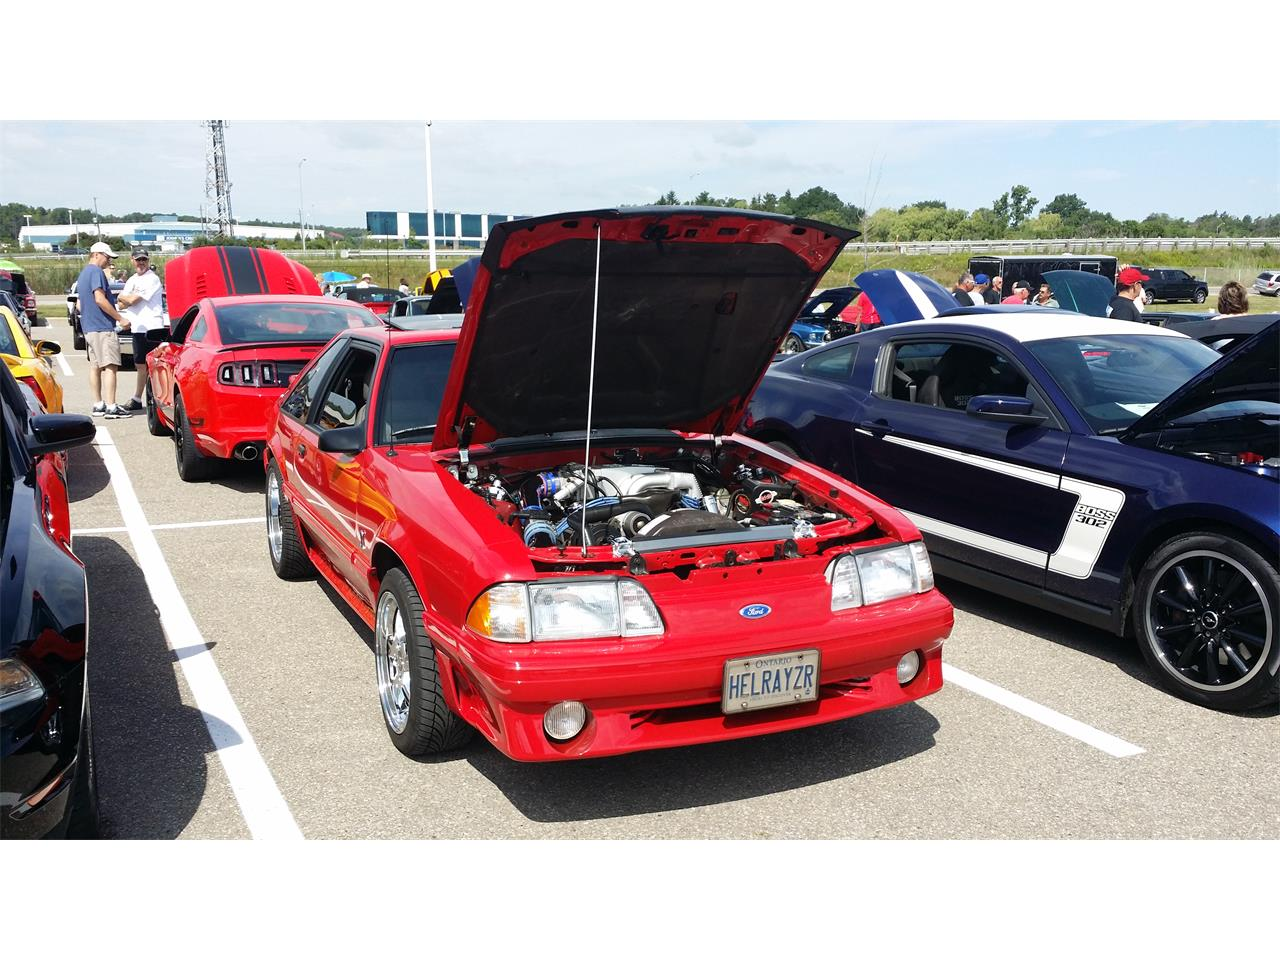 Large Picture of 1987 Mustang Cobra - $15,000.00 Offered by a Private Seller - PSFC